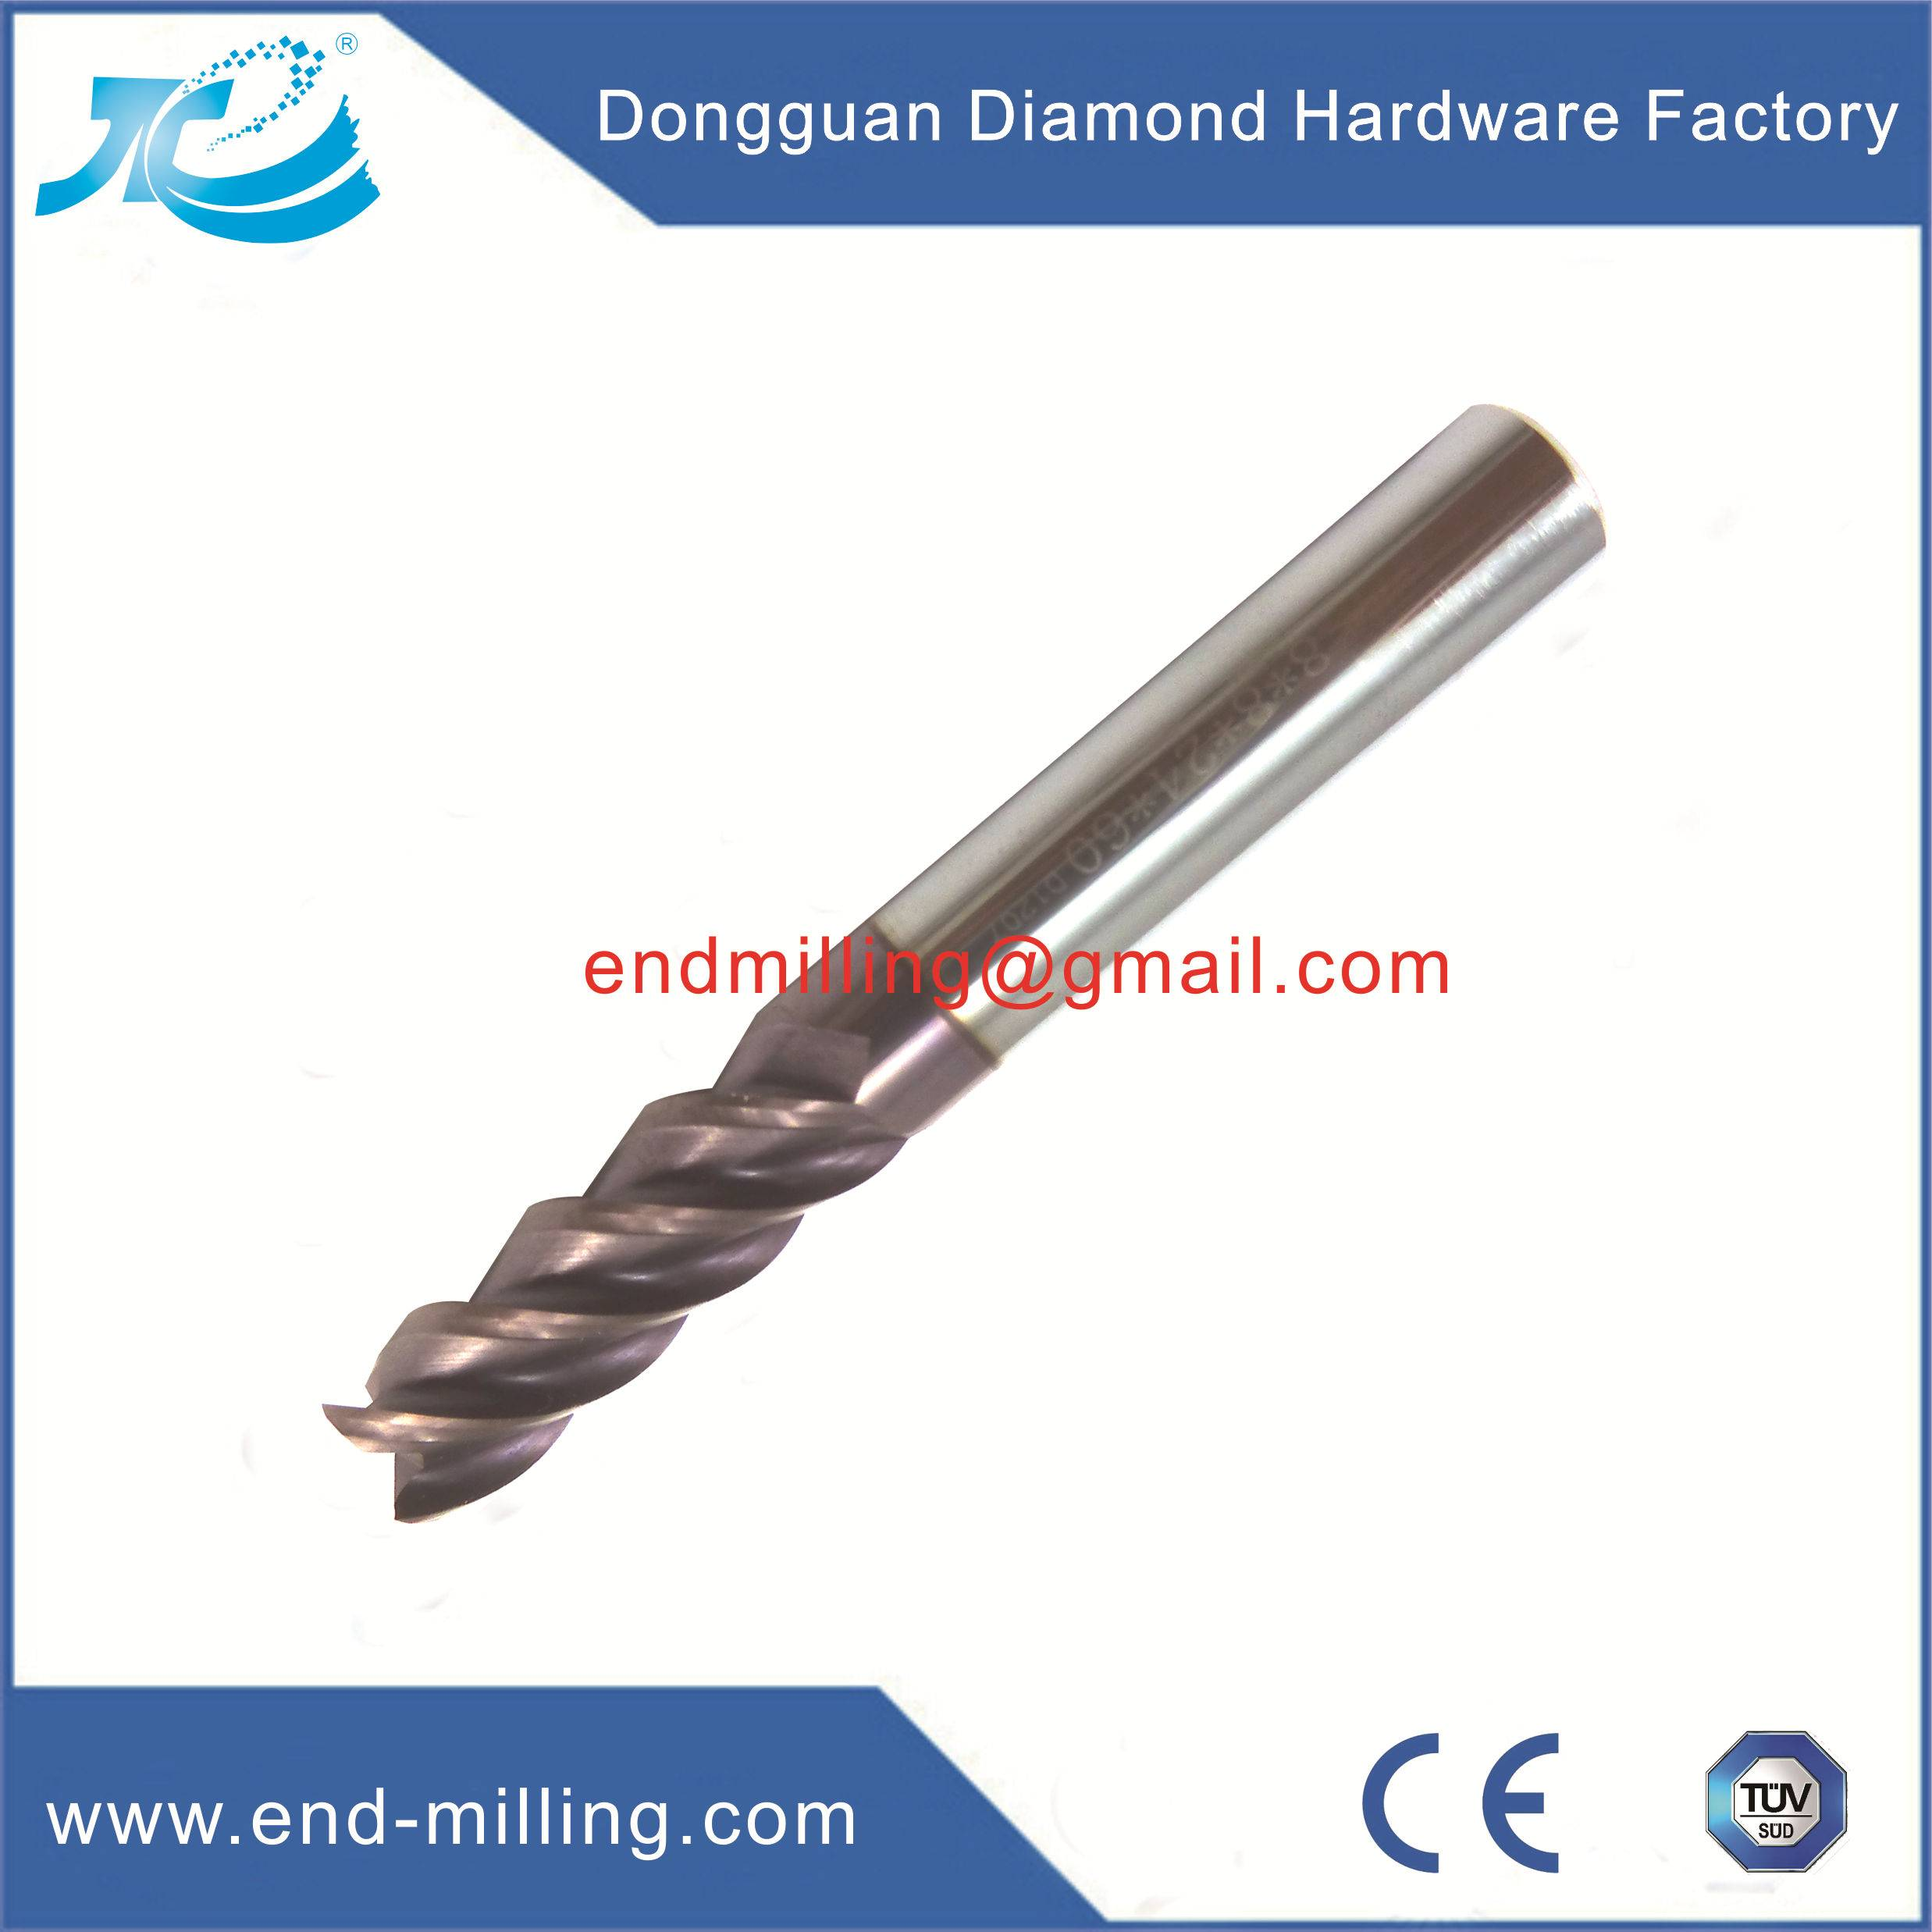 Tungsten Steel End Mills for Stainless Steel